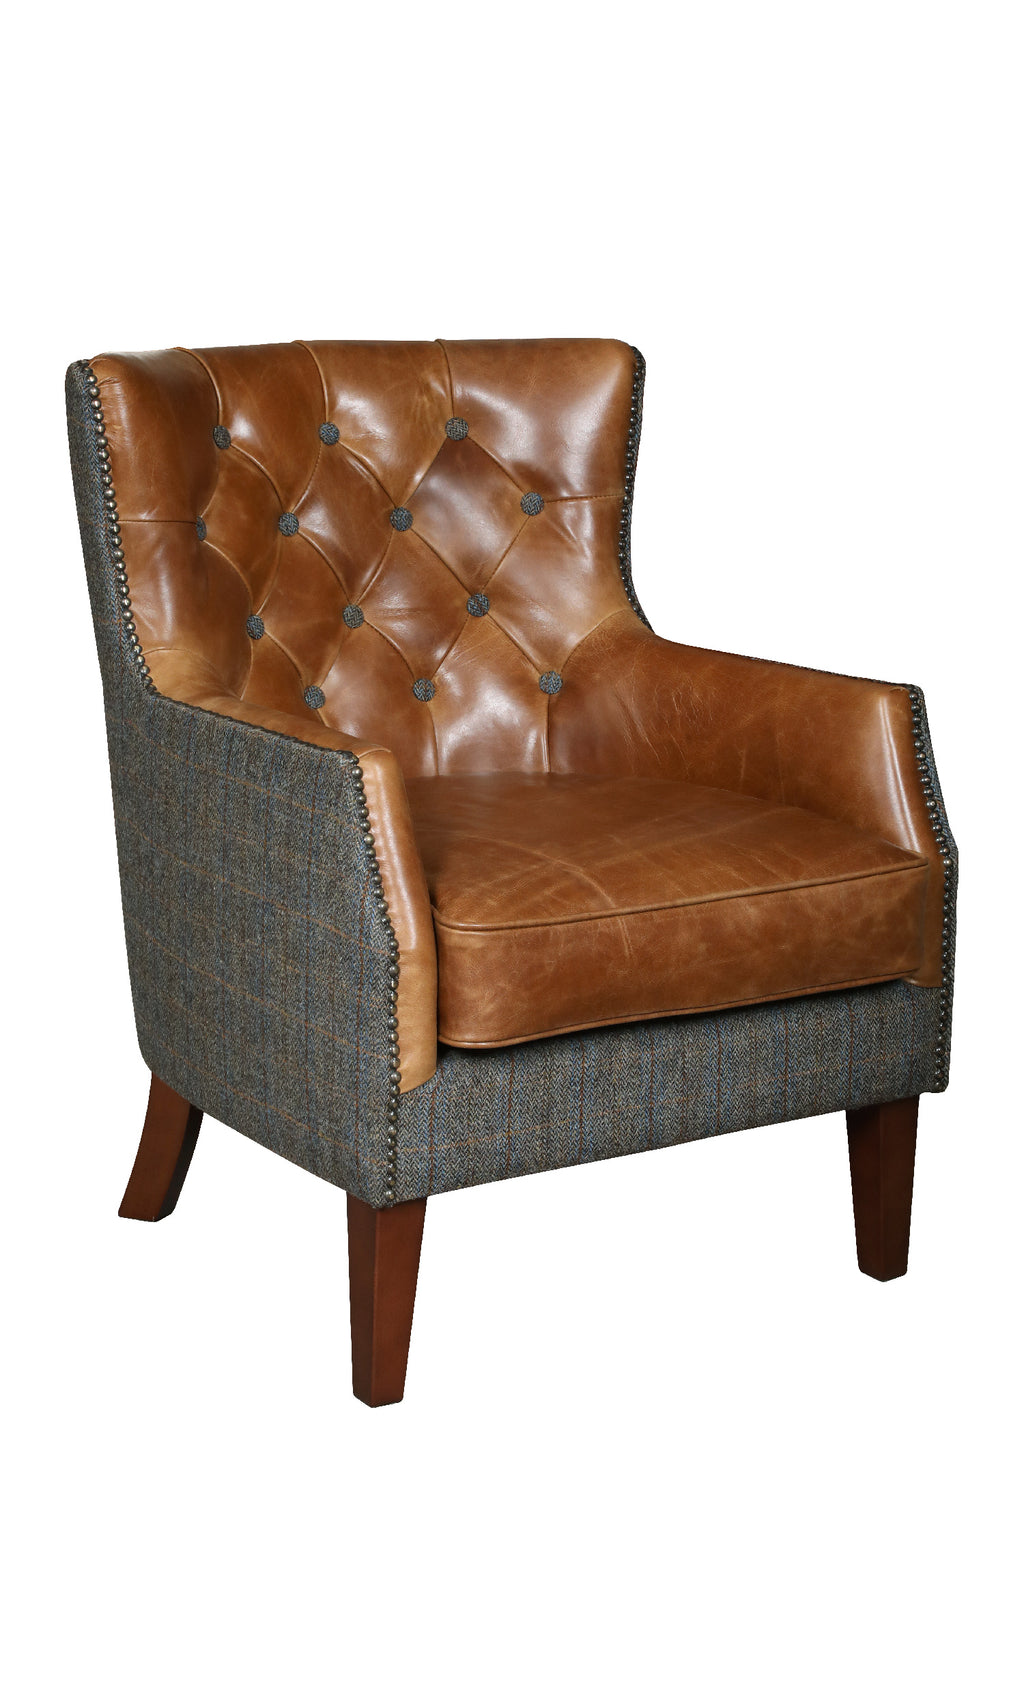 Stanford Harris Tweed and Leather Accent Chair.